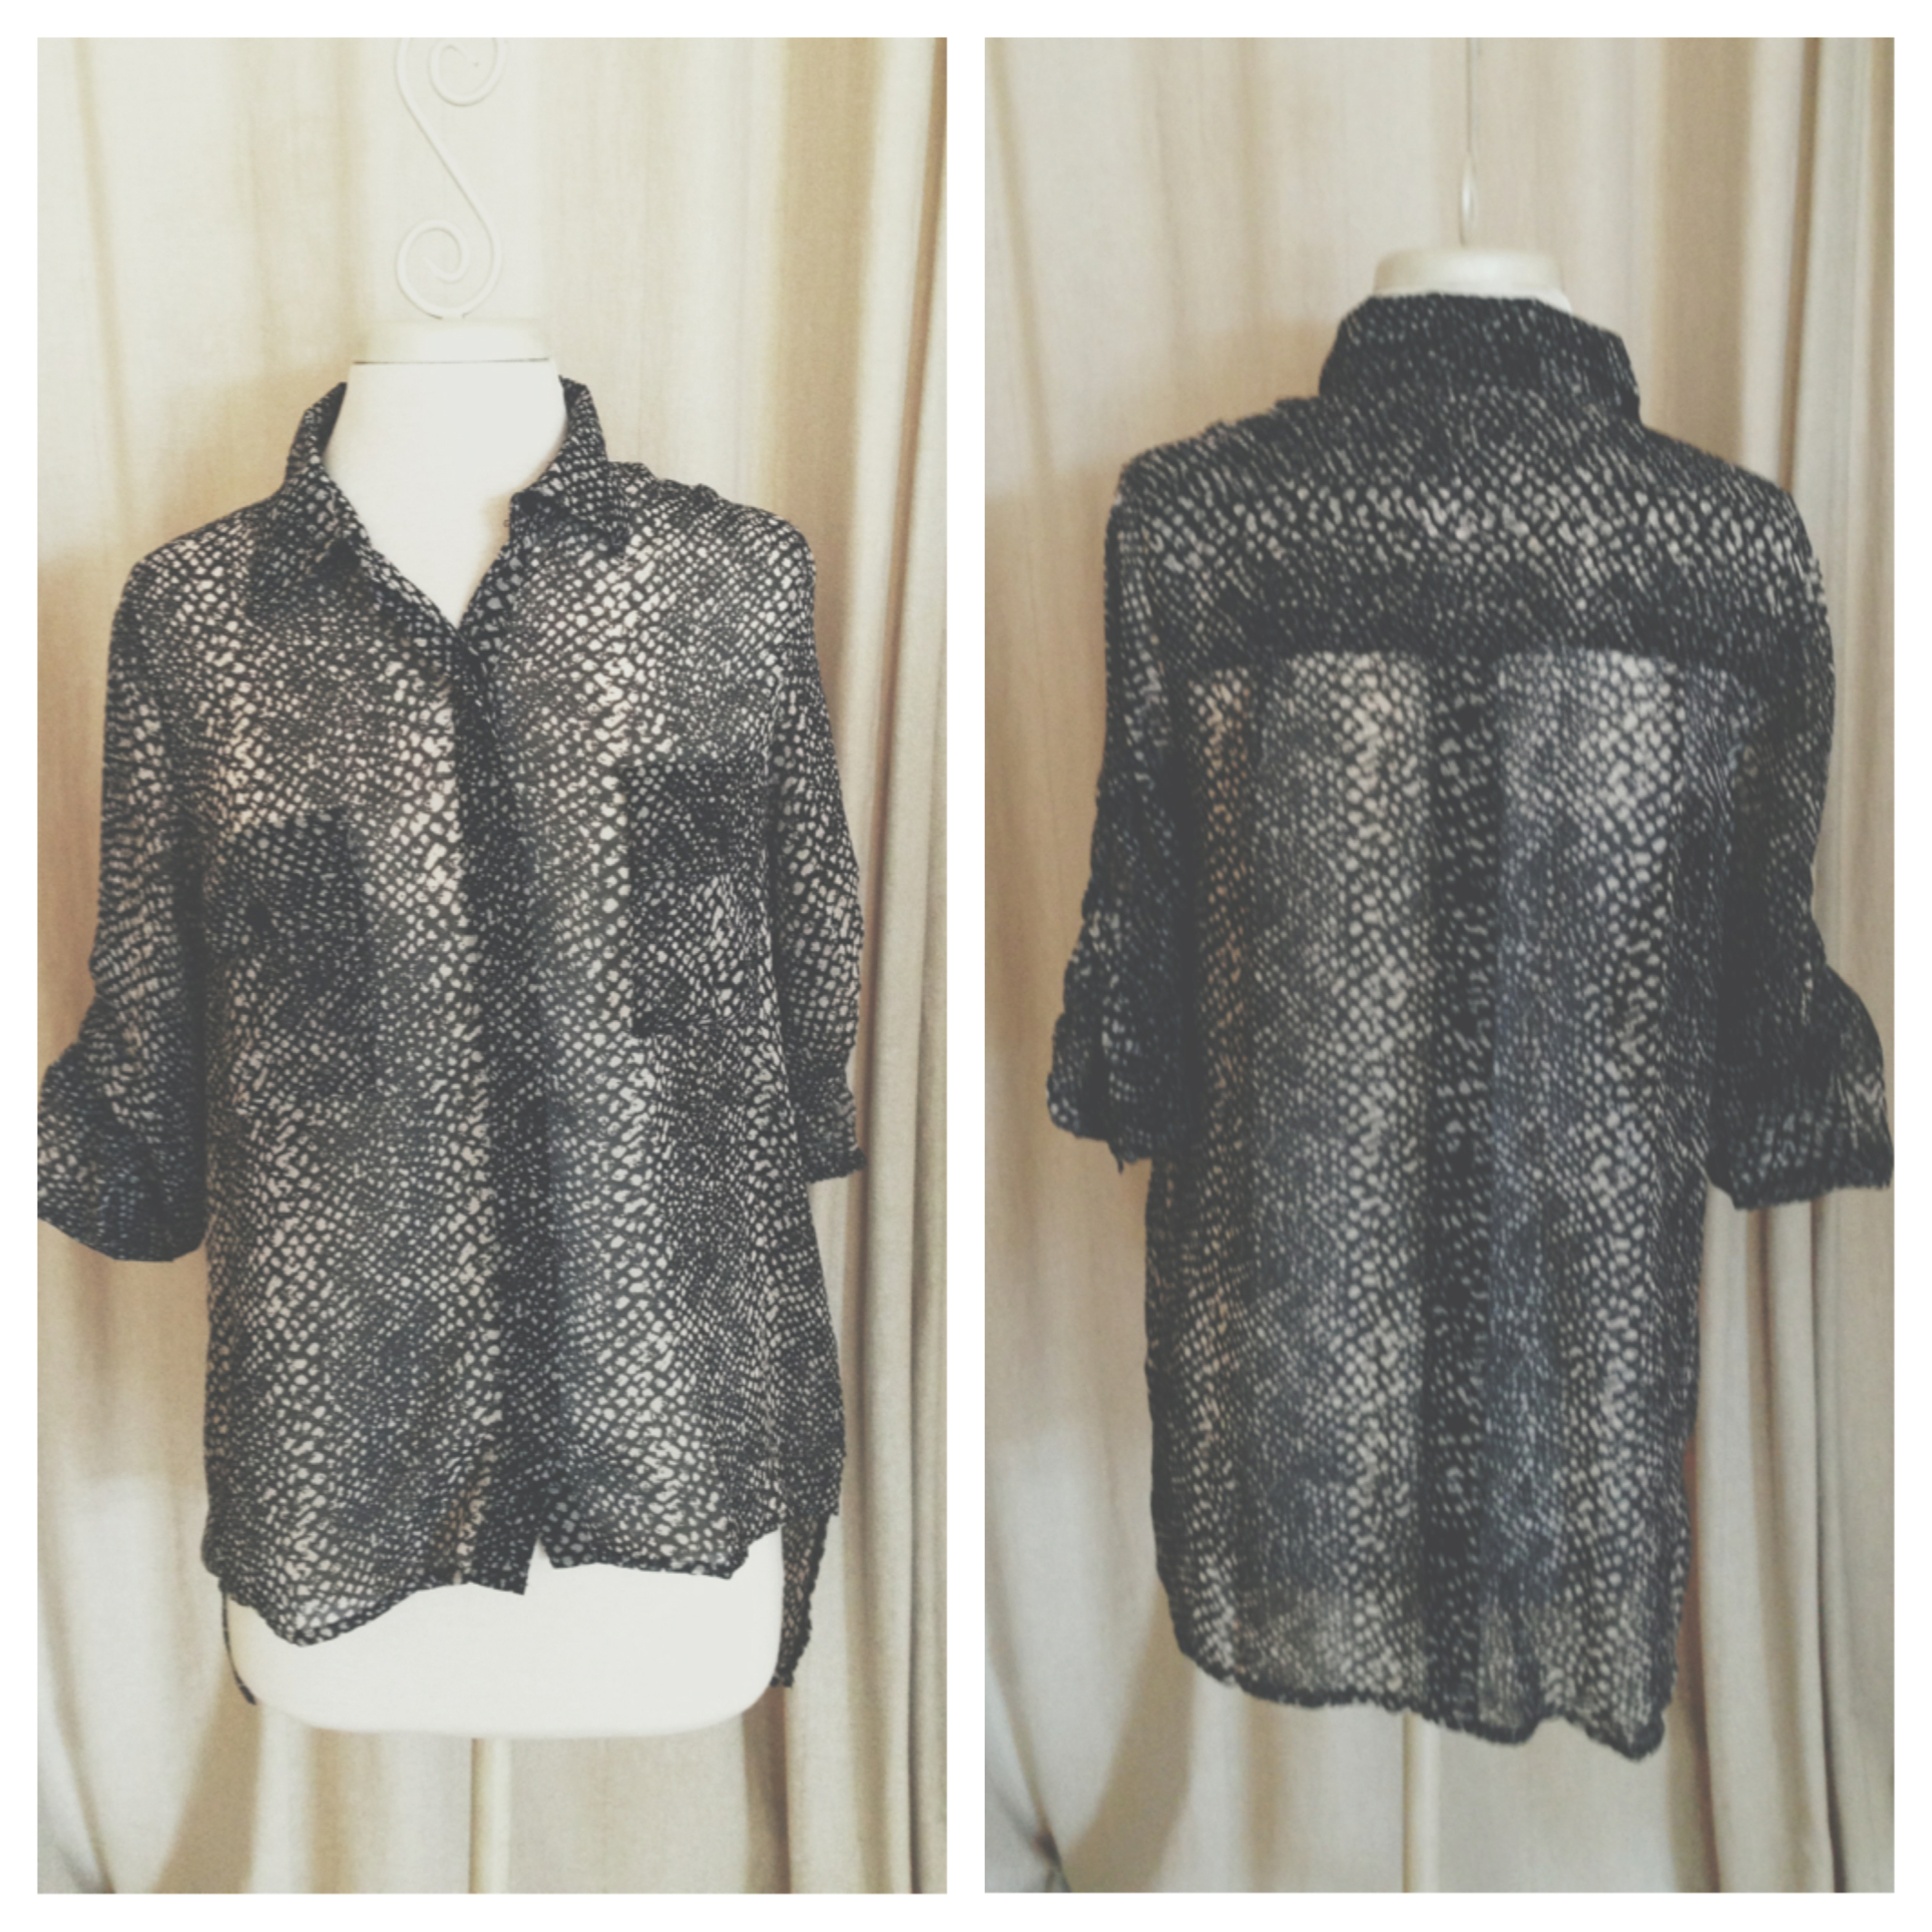 I mean, the back of this snake print blouse says it all. It's long enough to wear with leggings without worry!